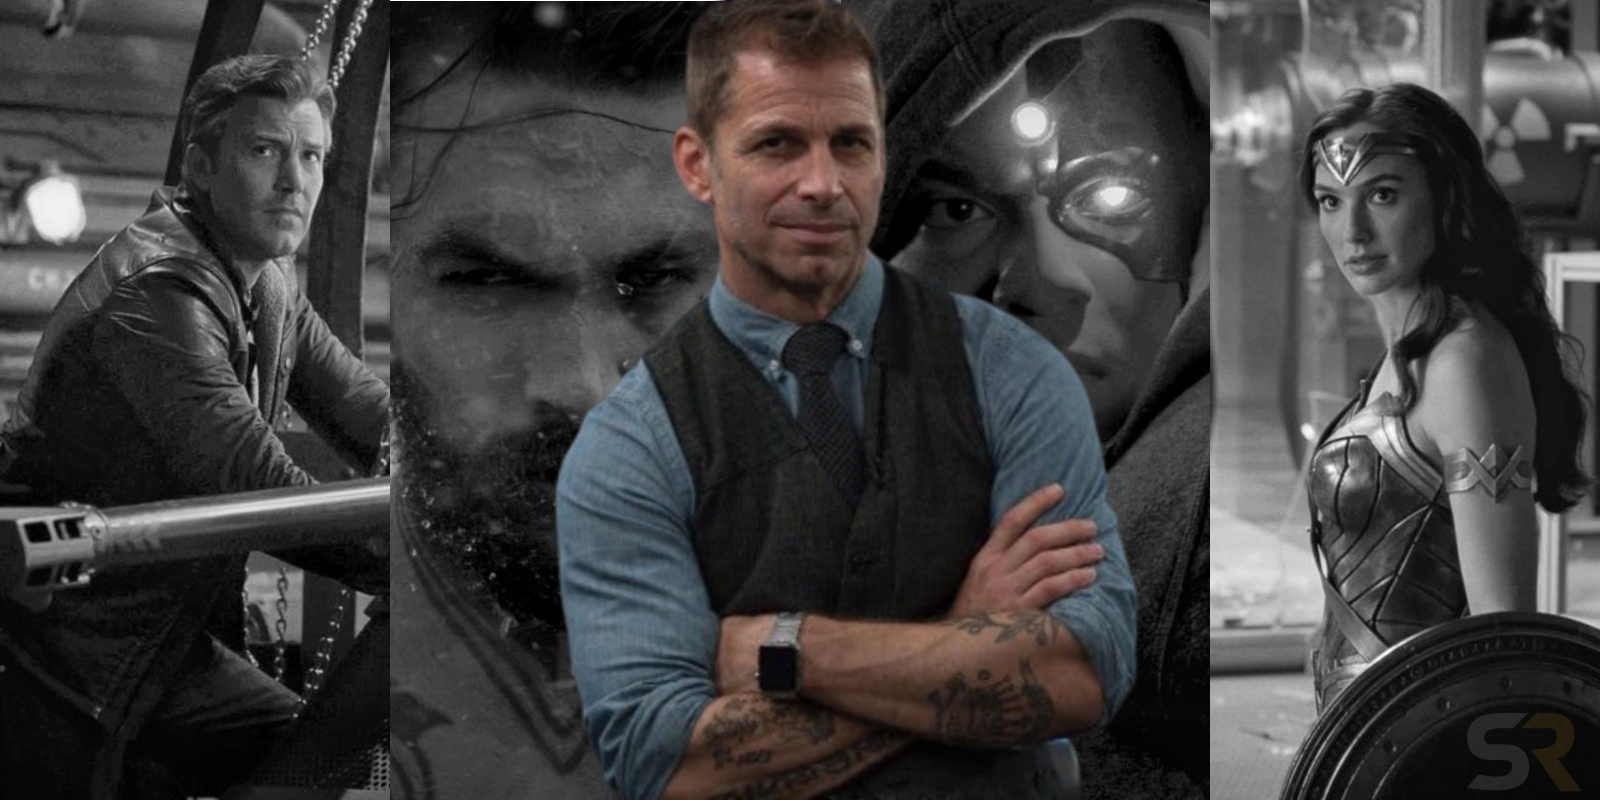 Justice League: New Snyder Cut Images Show Removed Scenes